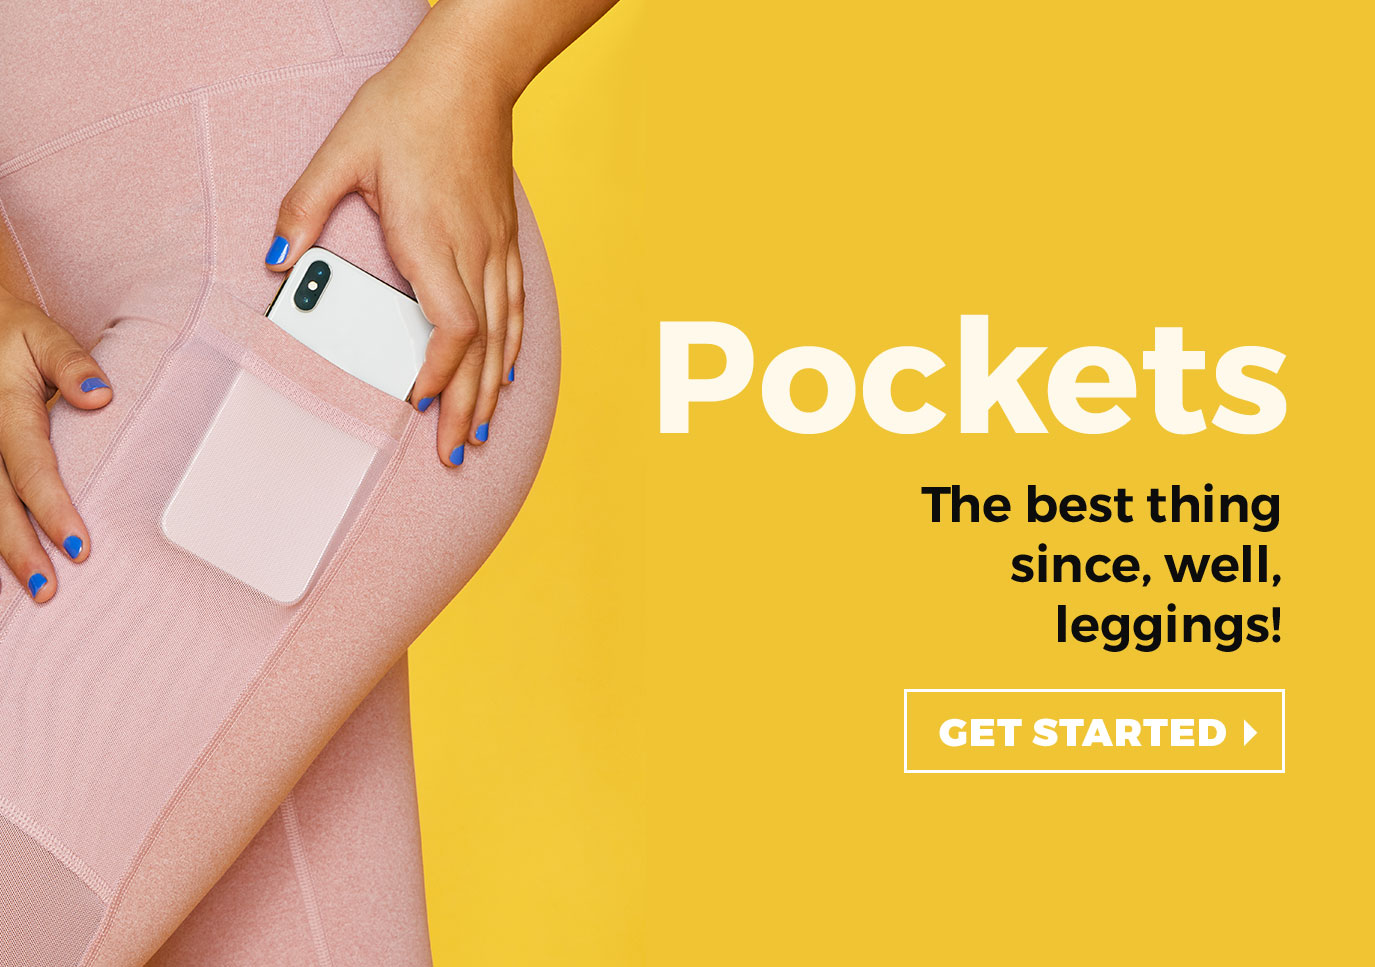 Pockets. The best thing since, well, leggings!